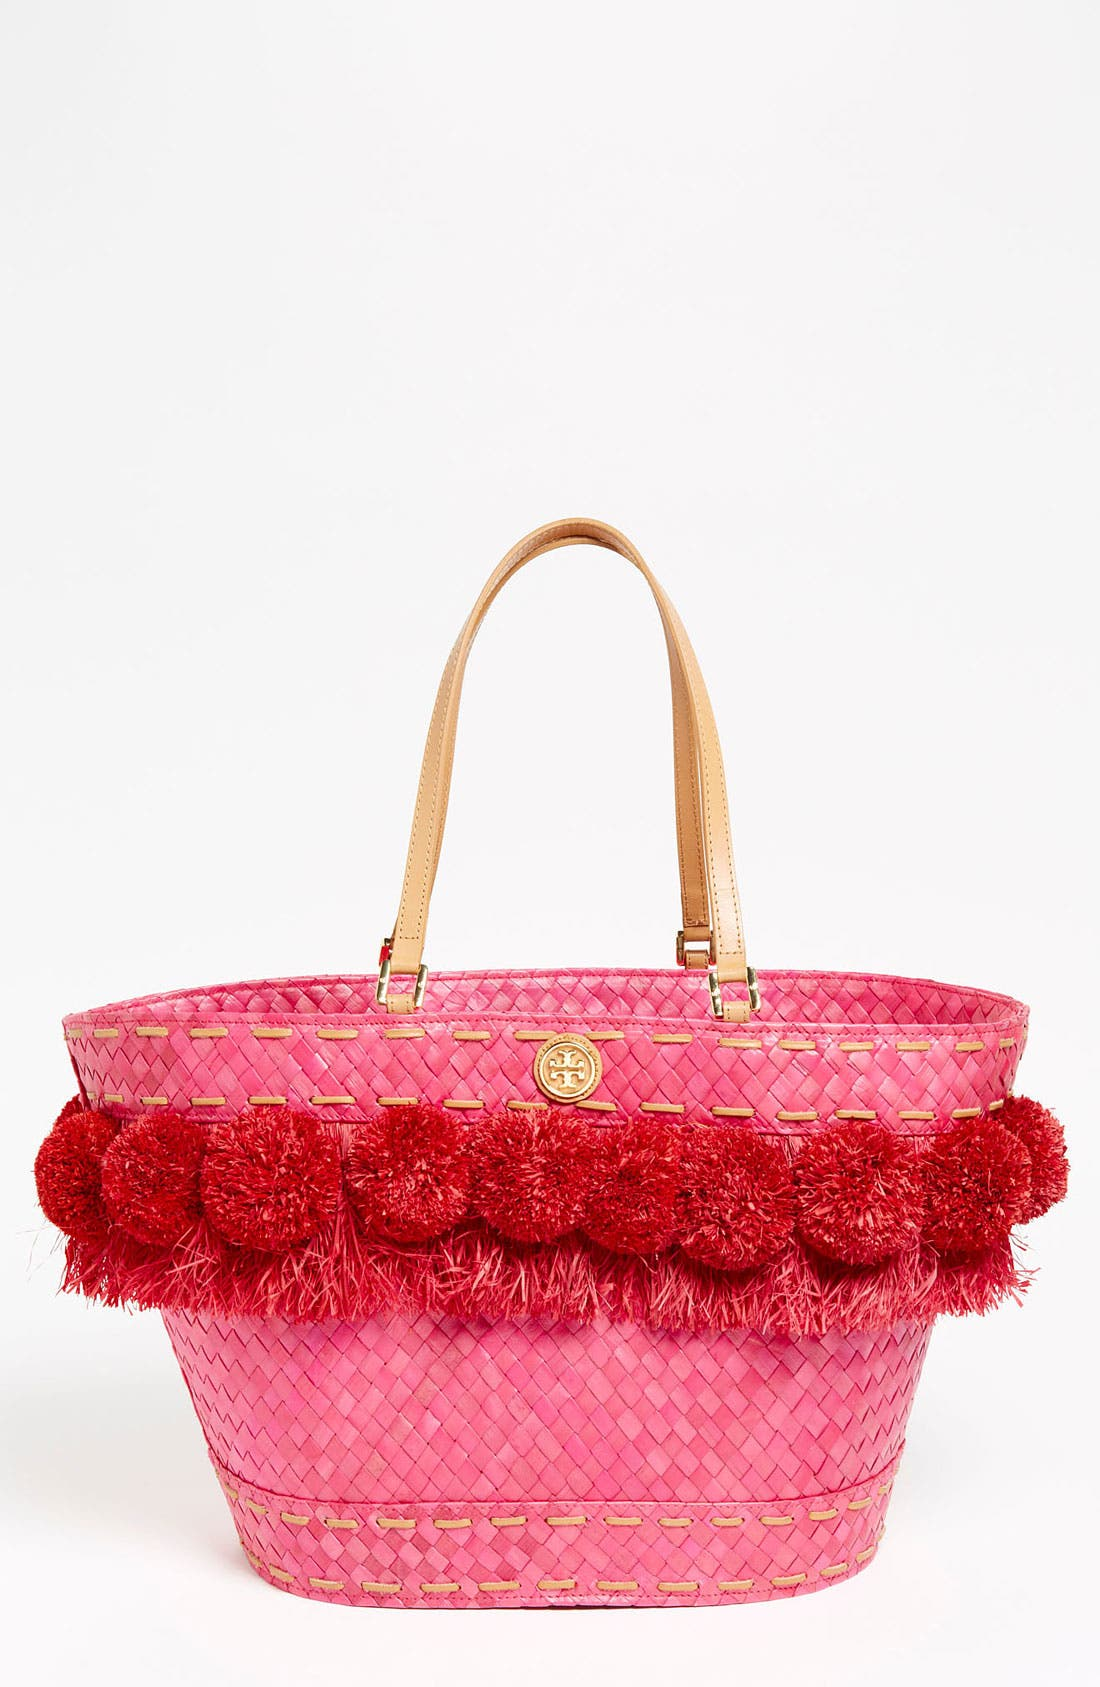 Main Image - Tory Burch 'Norah - Beachy' Bucket Tote